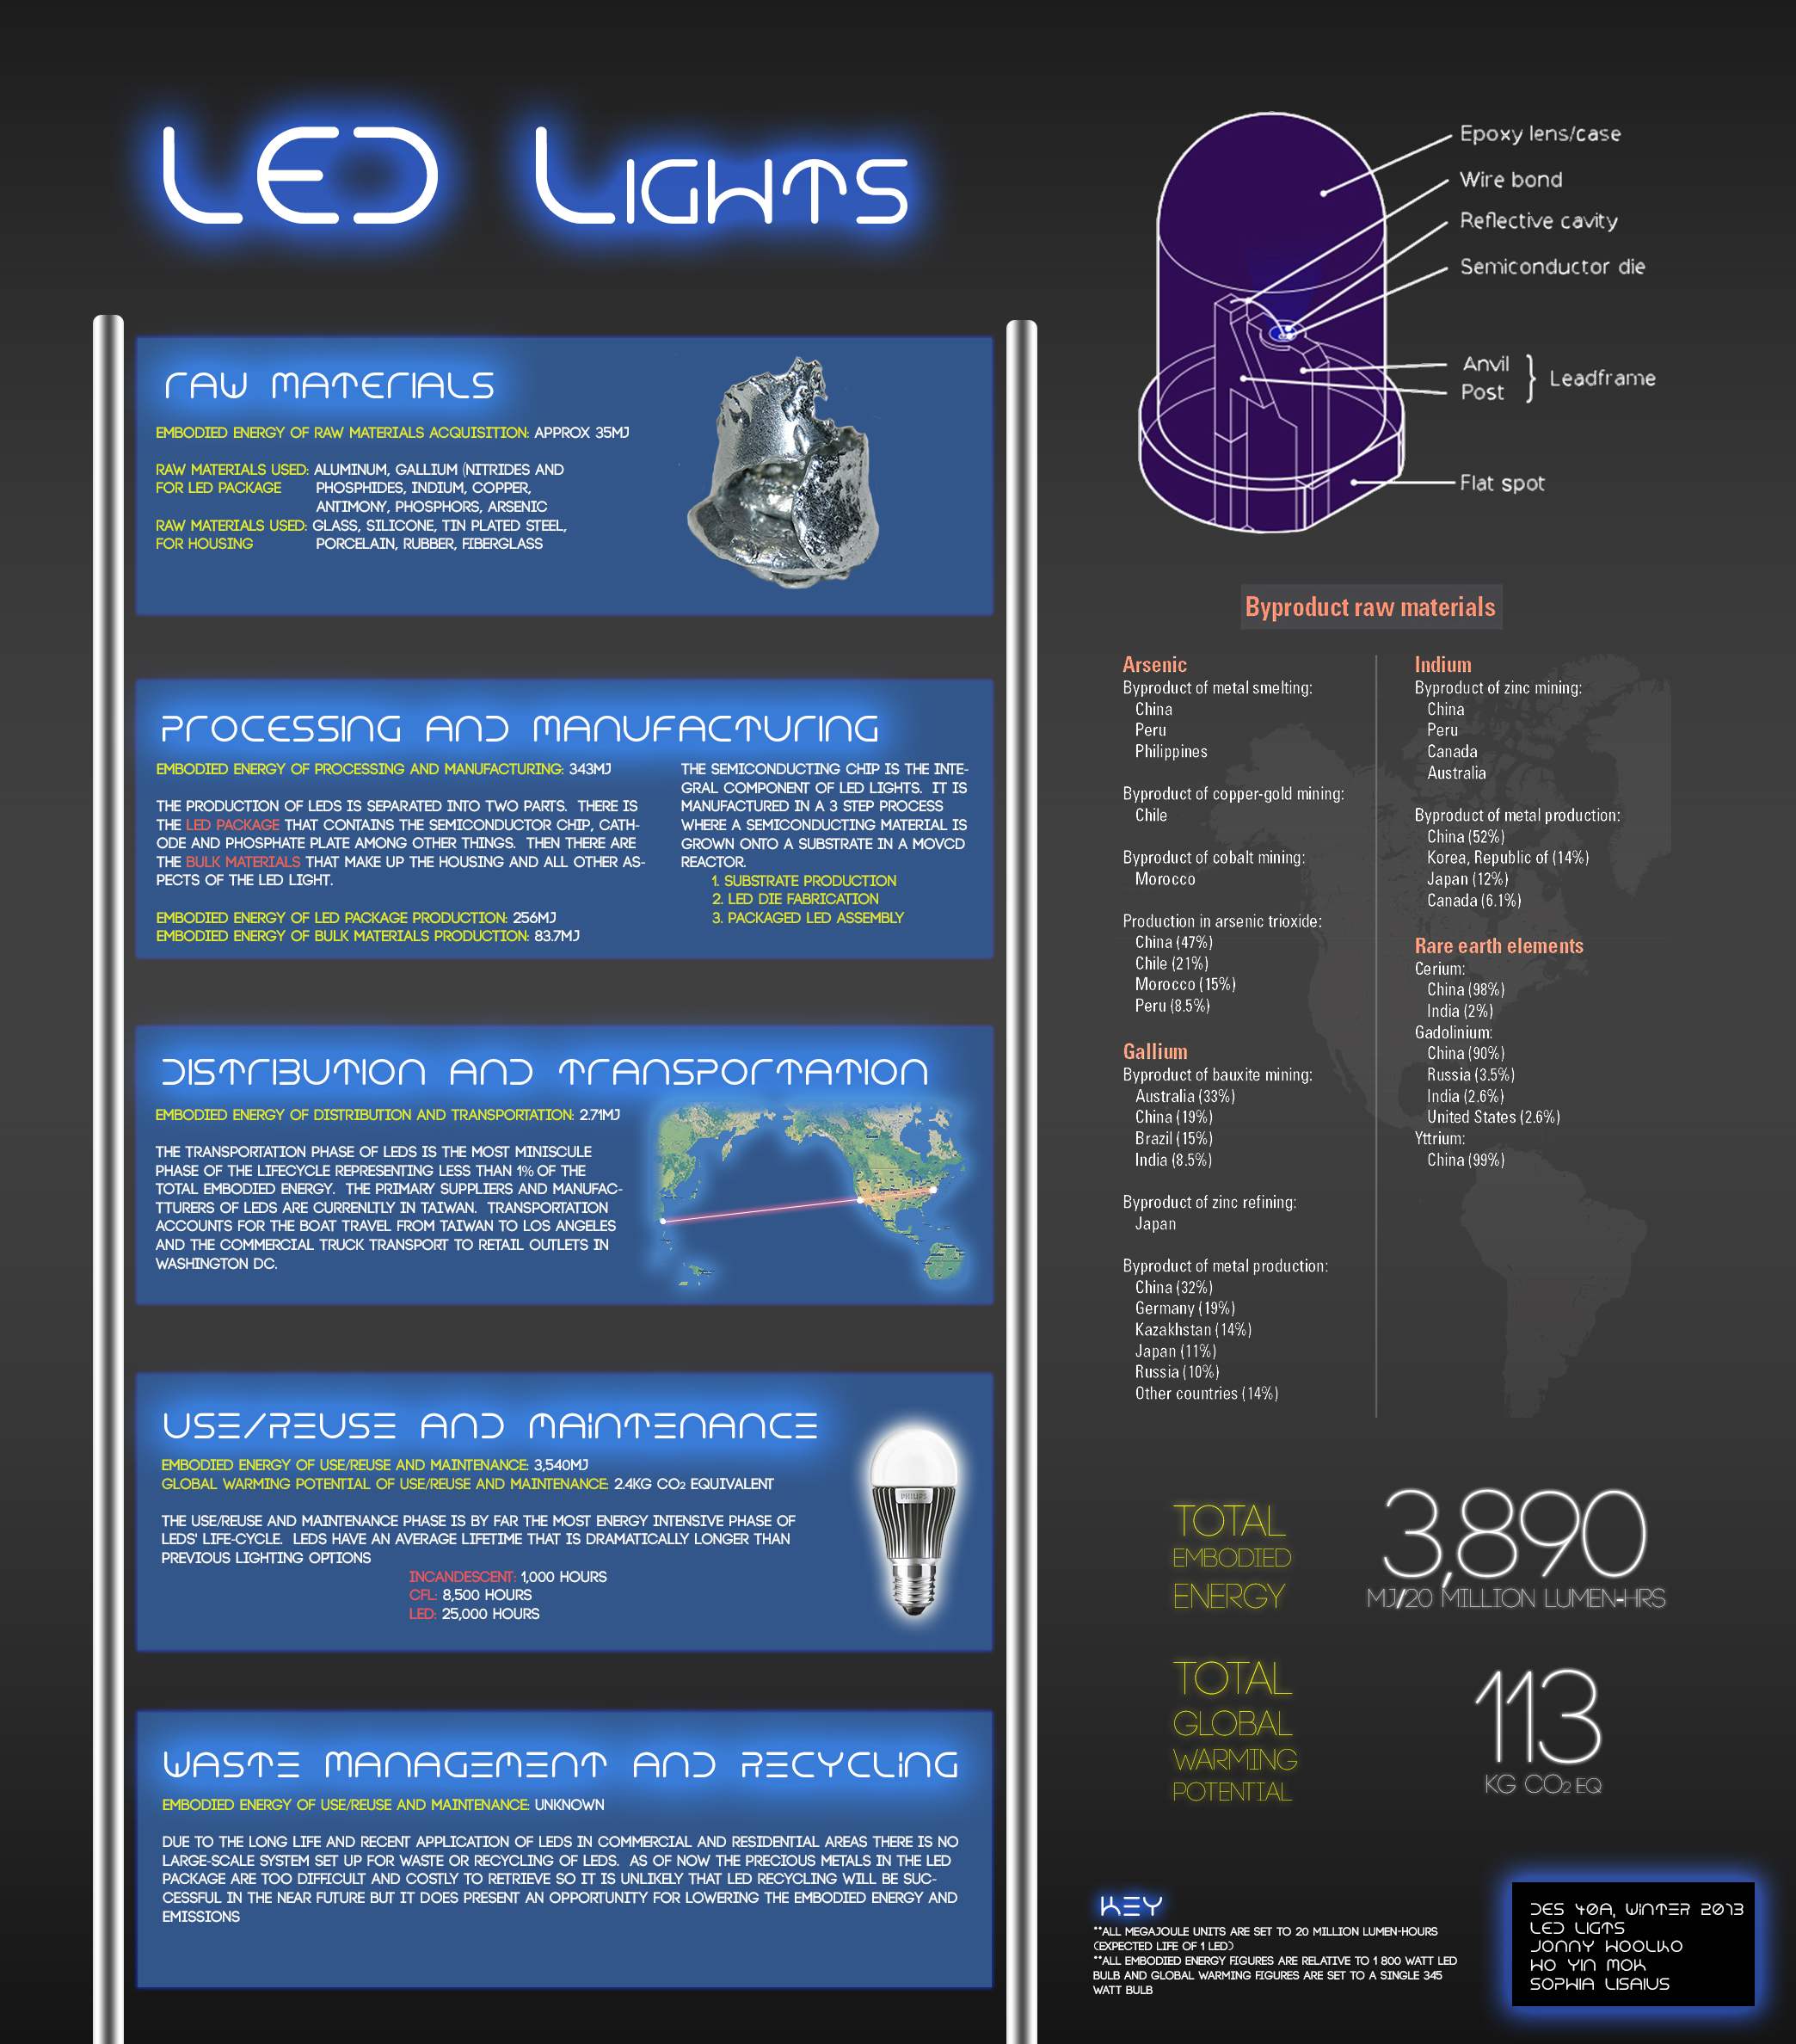 LED Lights Life Cycle